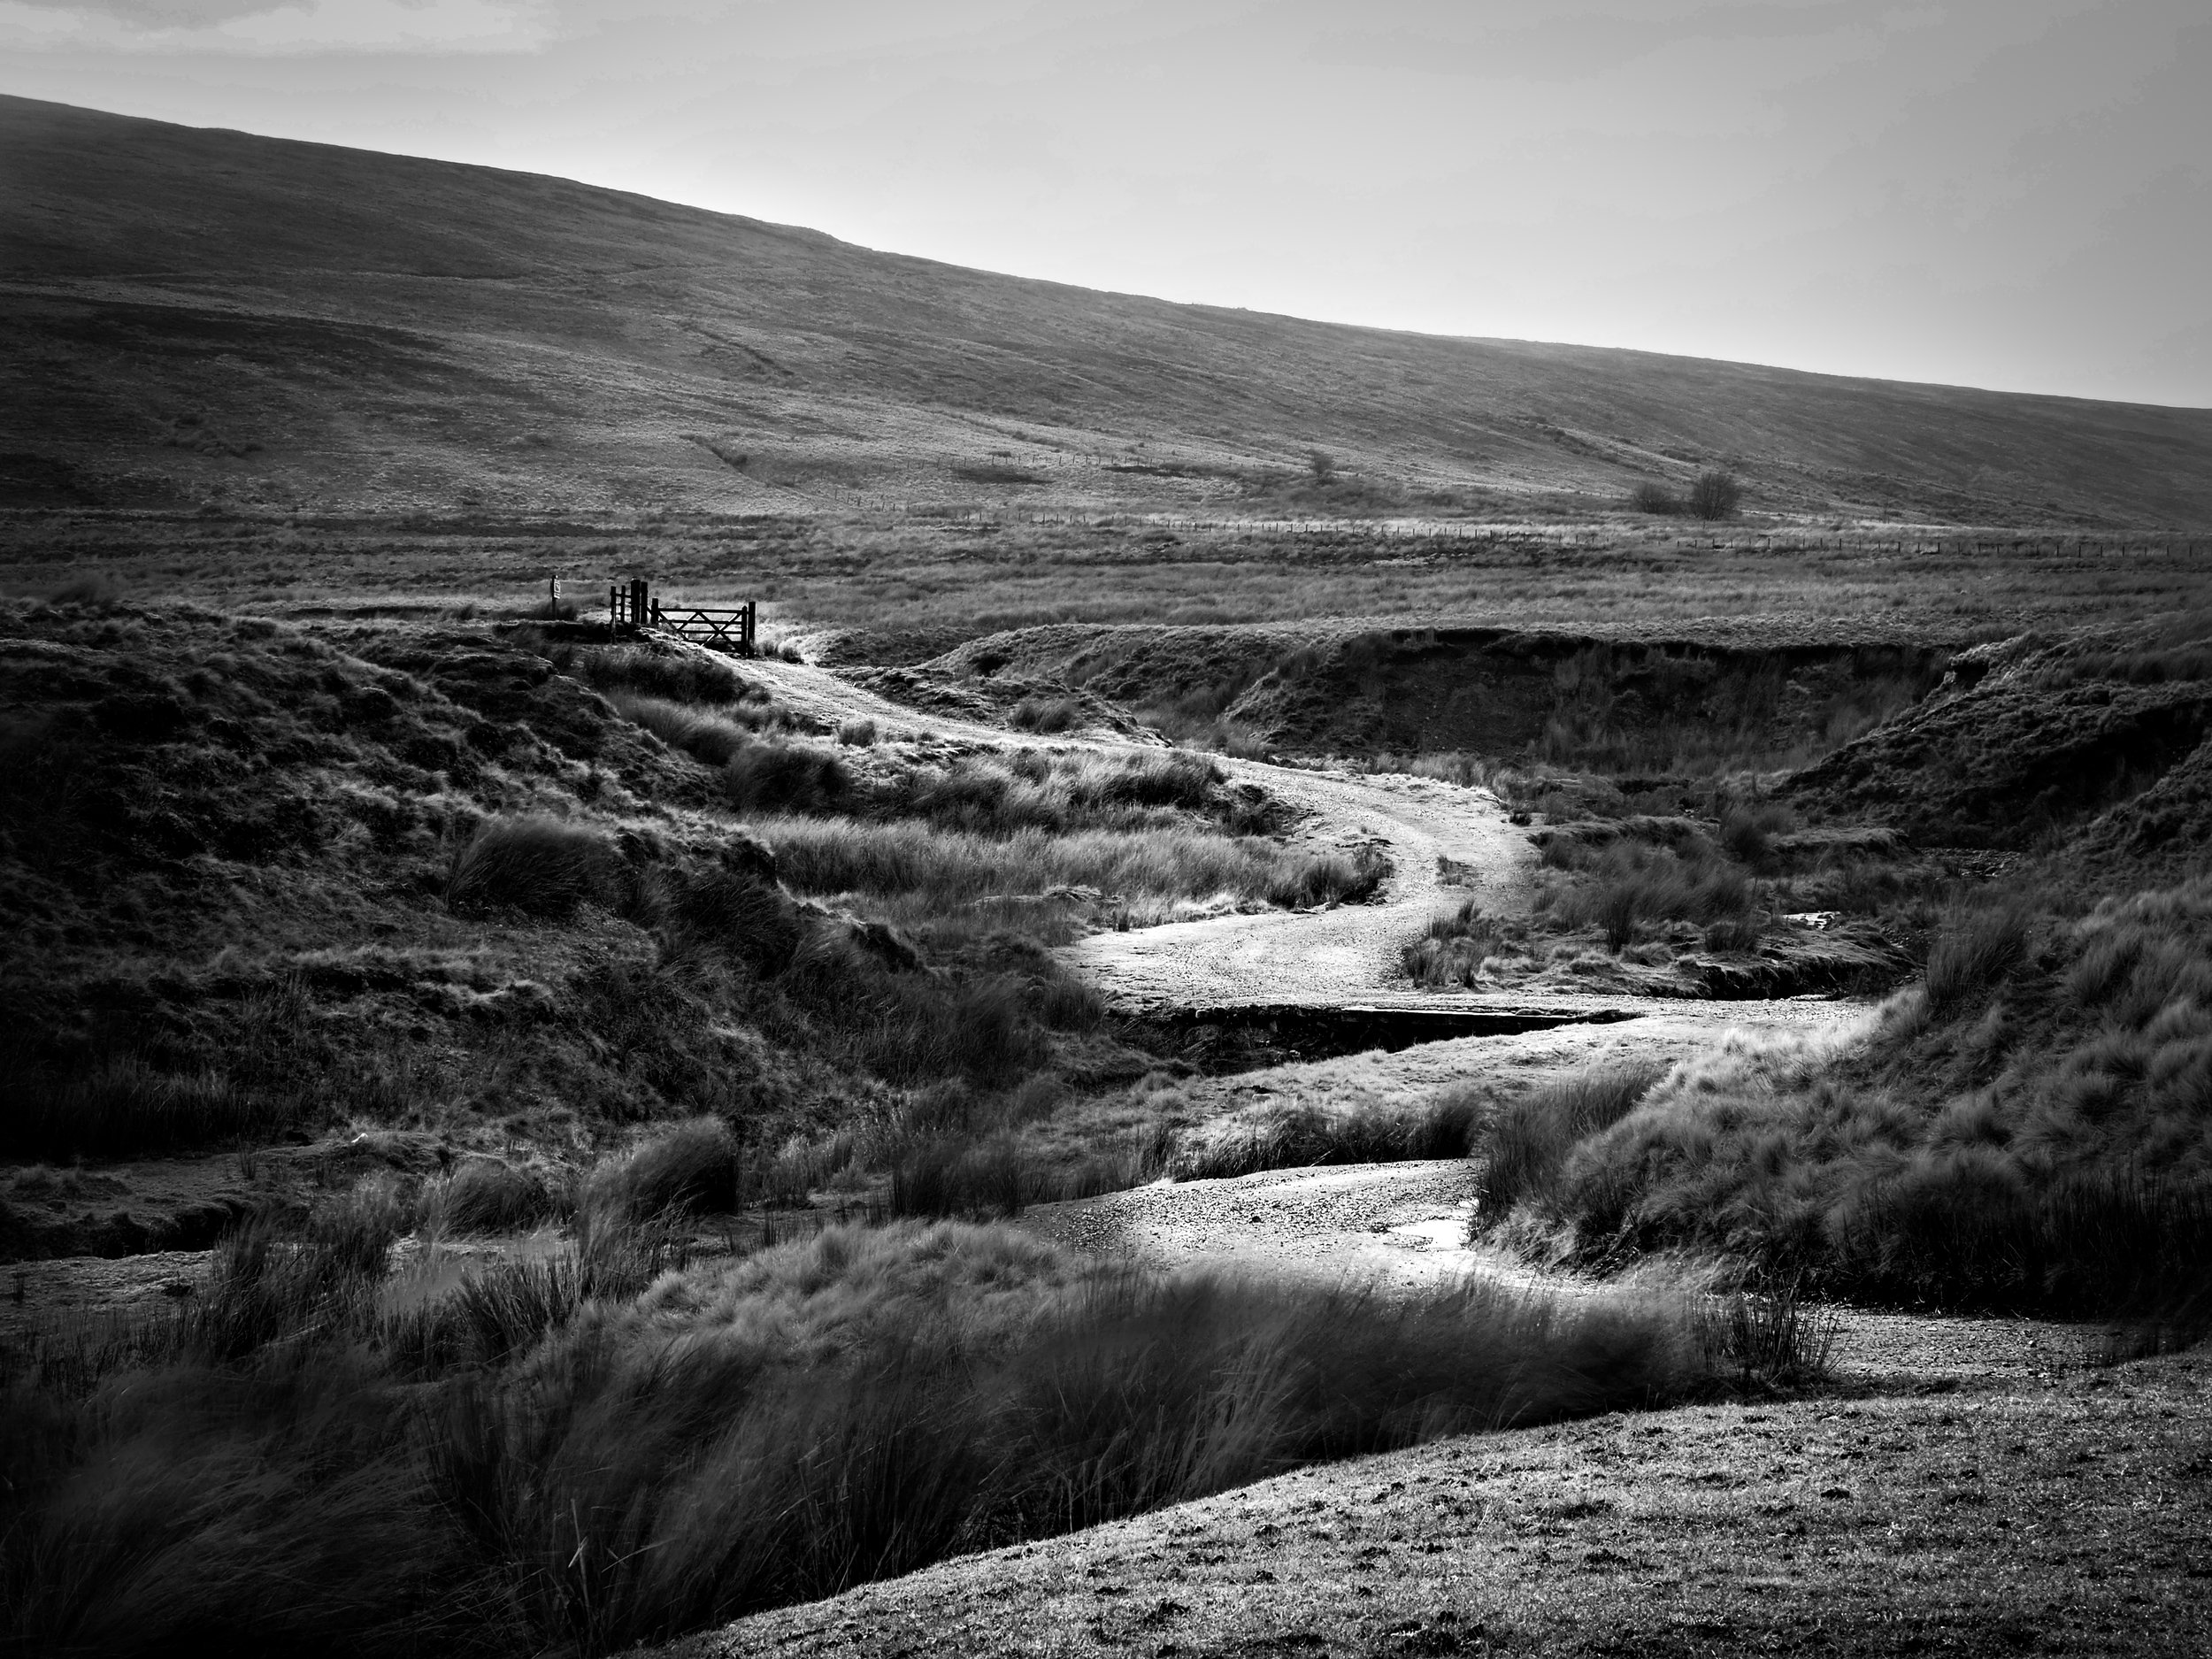 Trough of Bowland hill path   1/6th of a second in strong winds